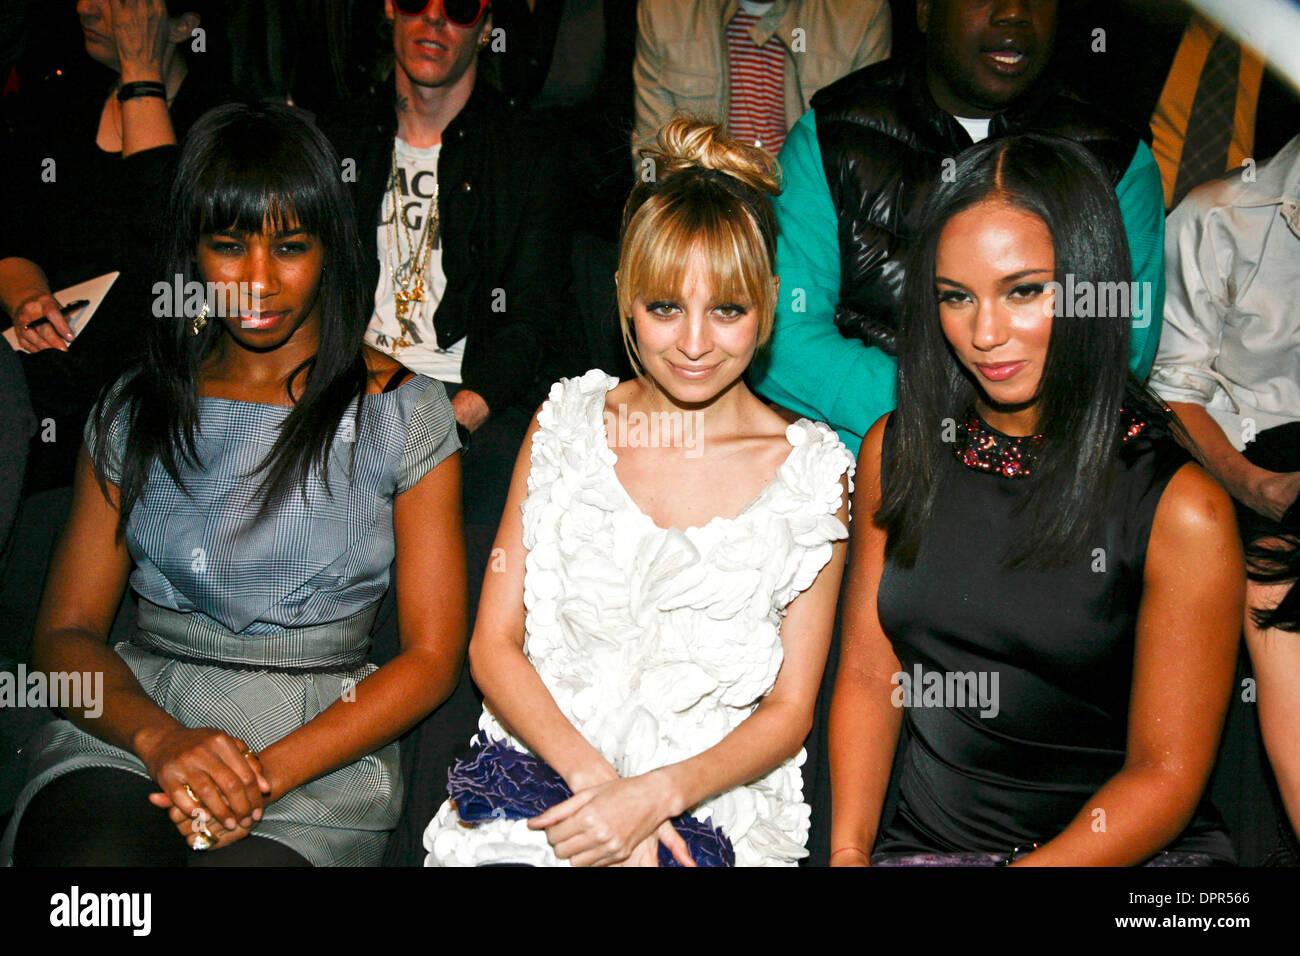 2afe833cc Feb 19, 2009 - New York, New York, USA - SANTOGOLD, ALICIA KEYS and NICOLE  RICHIE attending the Fall/Winter 2009 fashion show of Zac Posen during  Mercedes ...